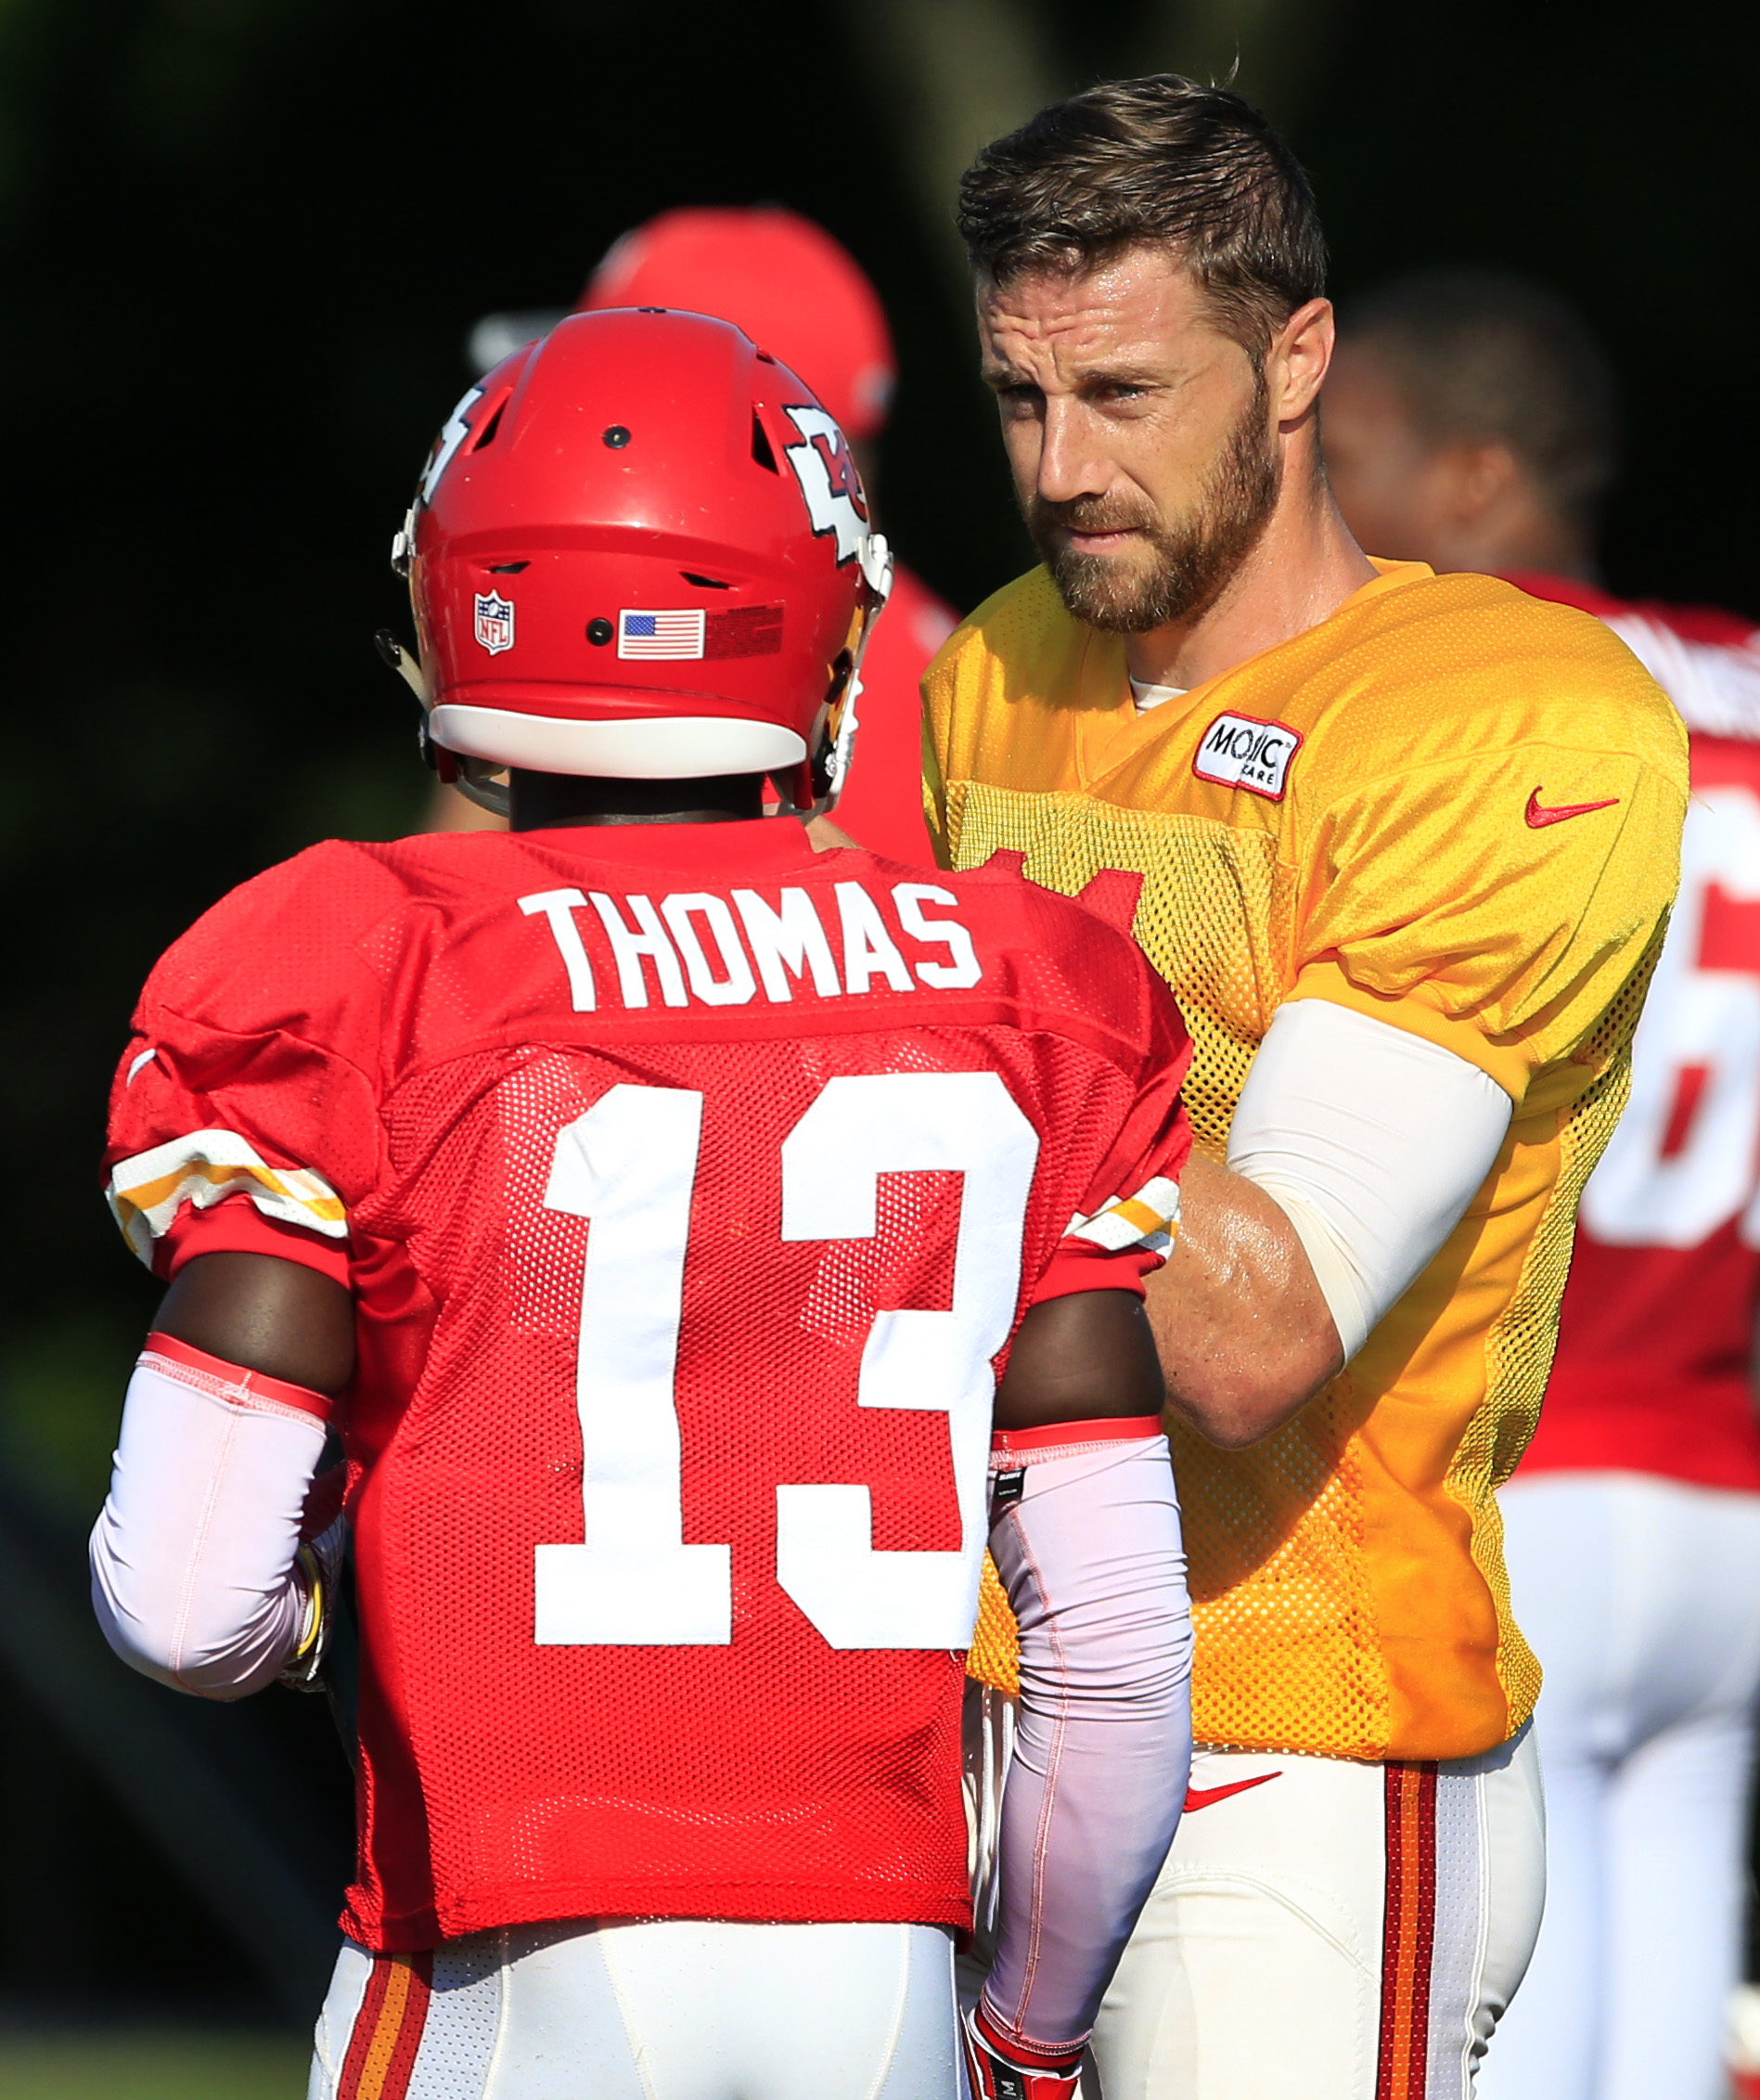 Kansas City Chiefs quarterback Alex Smith, right, talks with wide receiver De'Anthony Thomas (13) during NFL football training camp in St. Joseph, Mo., Wednesday, Aug. 10, 2016. (AP Photo/Orlin Wagner)